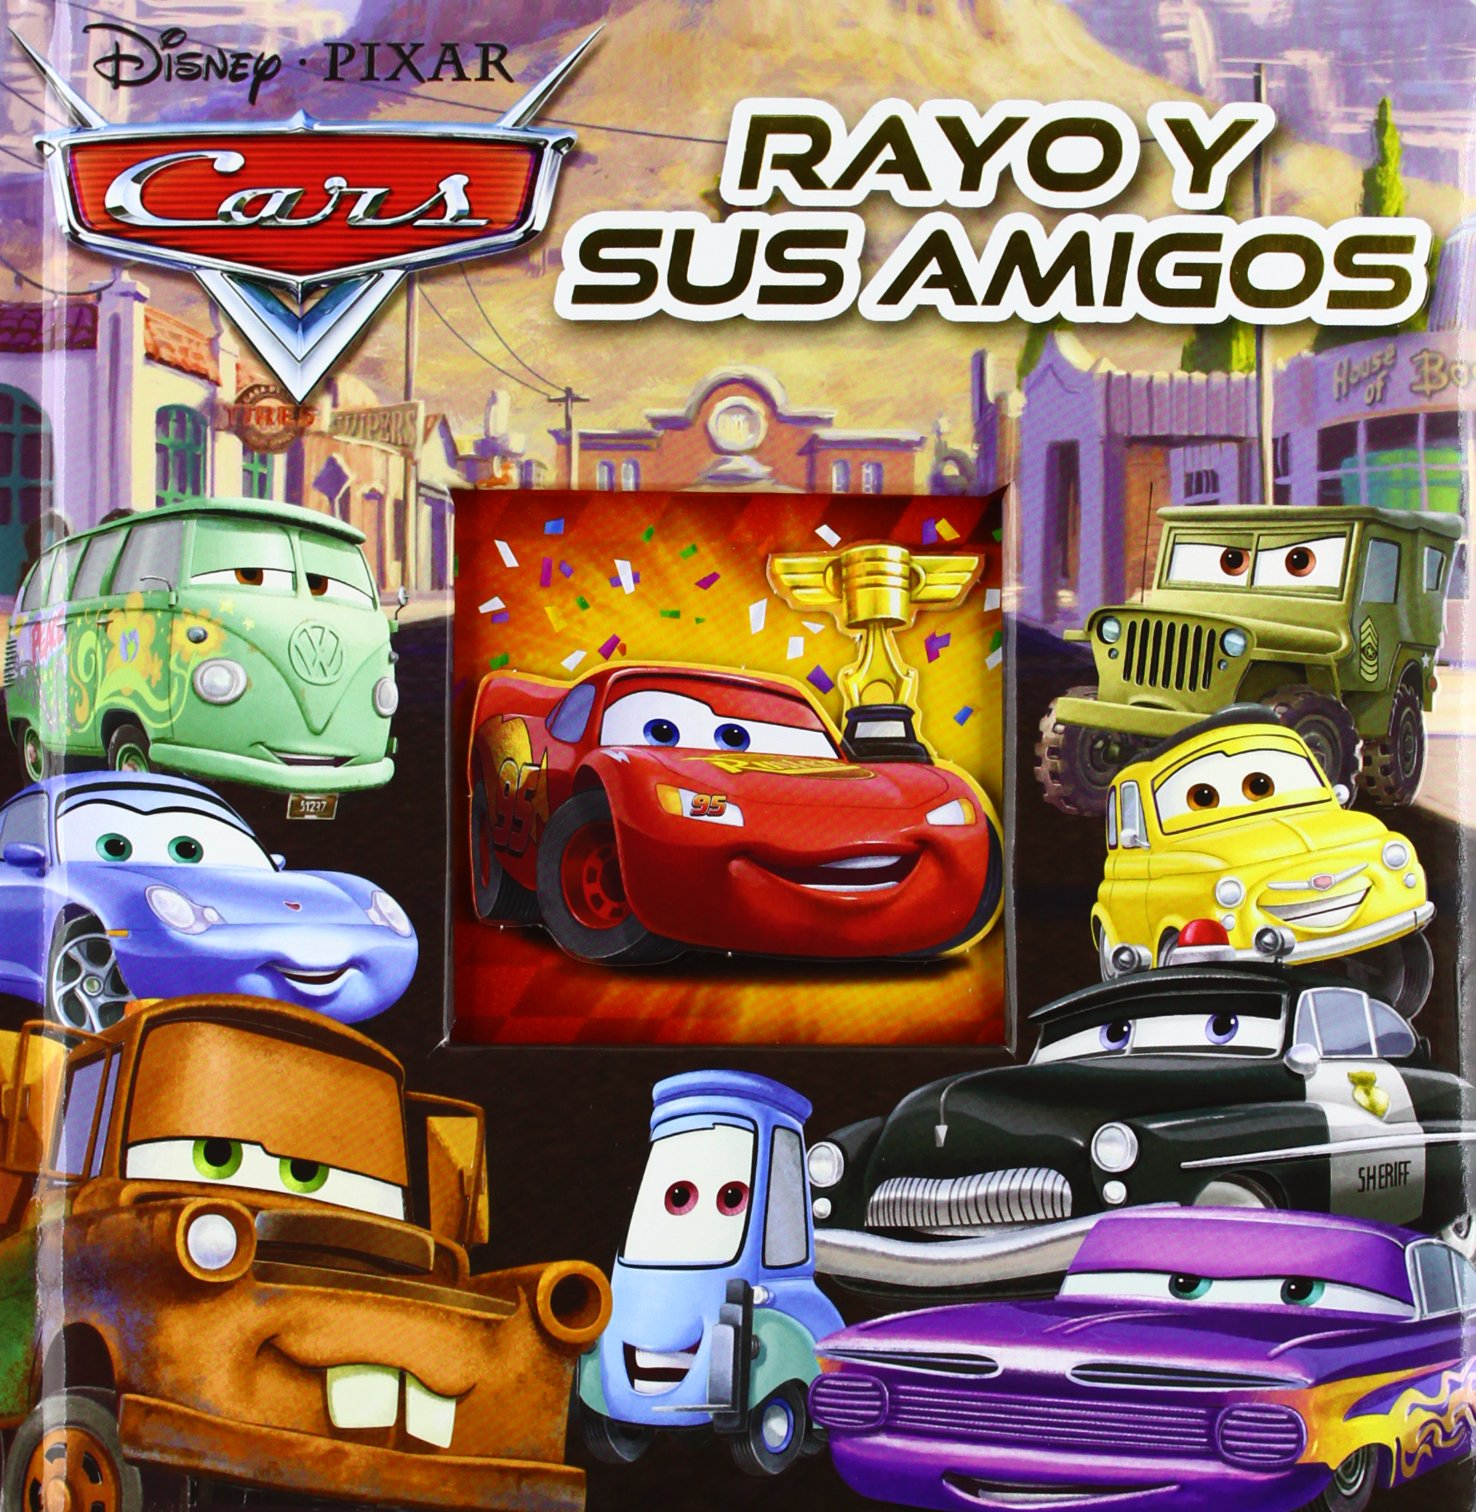 RAYO Y SUS AMIGOS. CARS (Spanish) Paperback – January 1, 1900